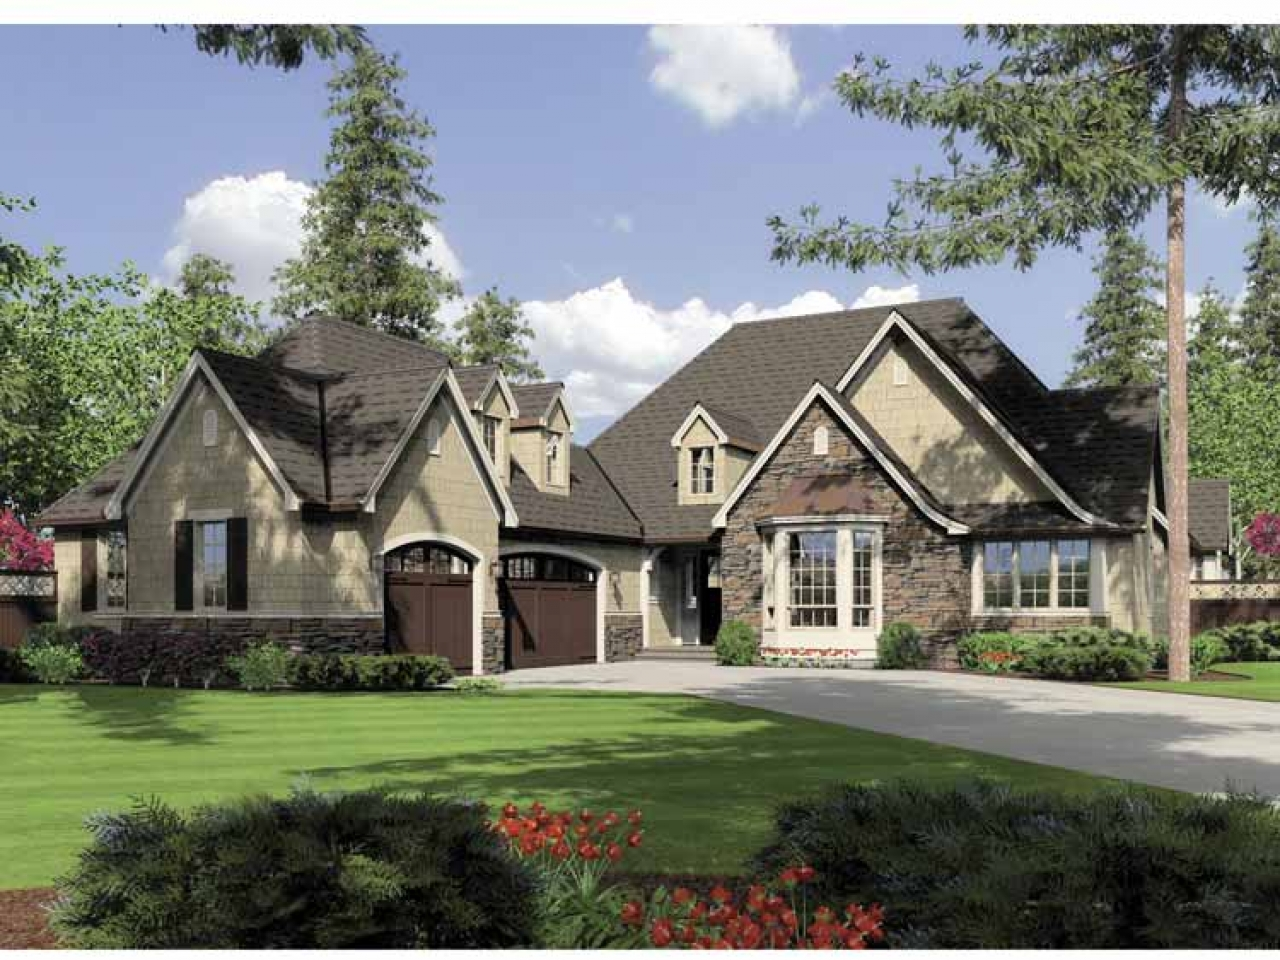 French Countryside English Countryside One Story Home One Story Country House Plans